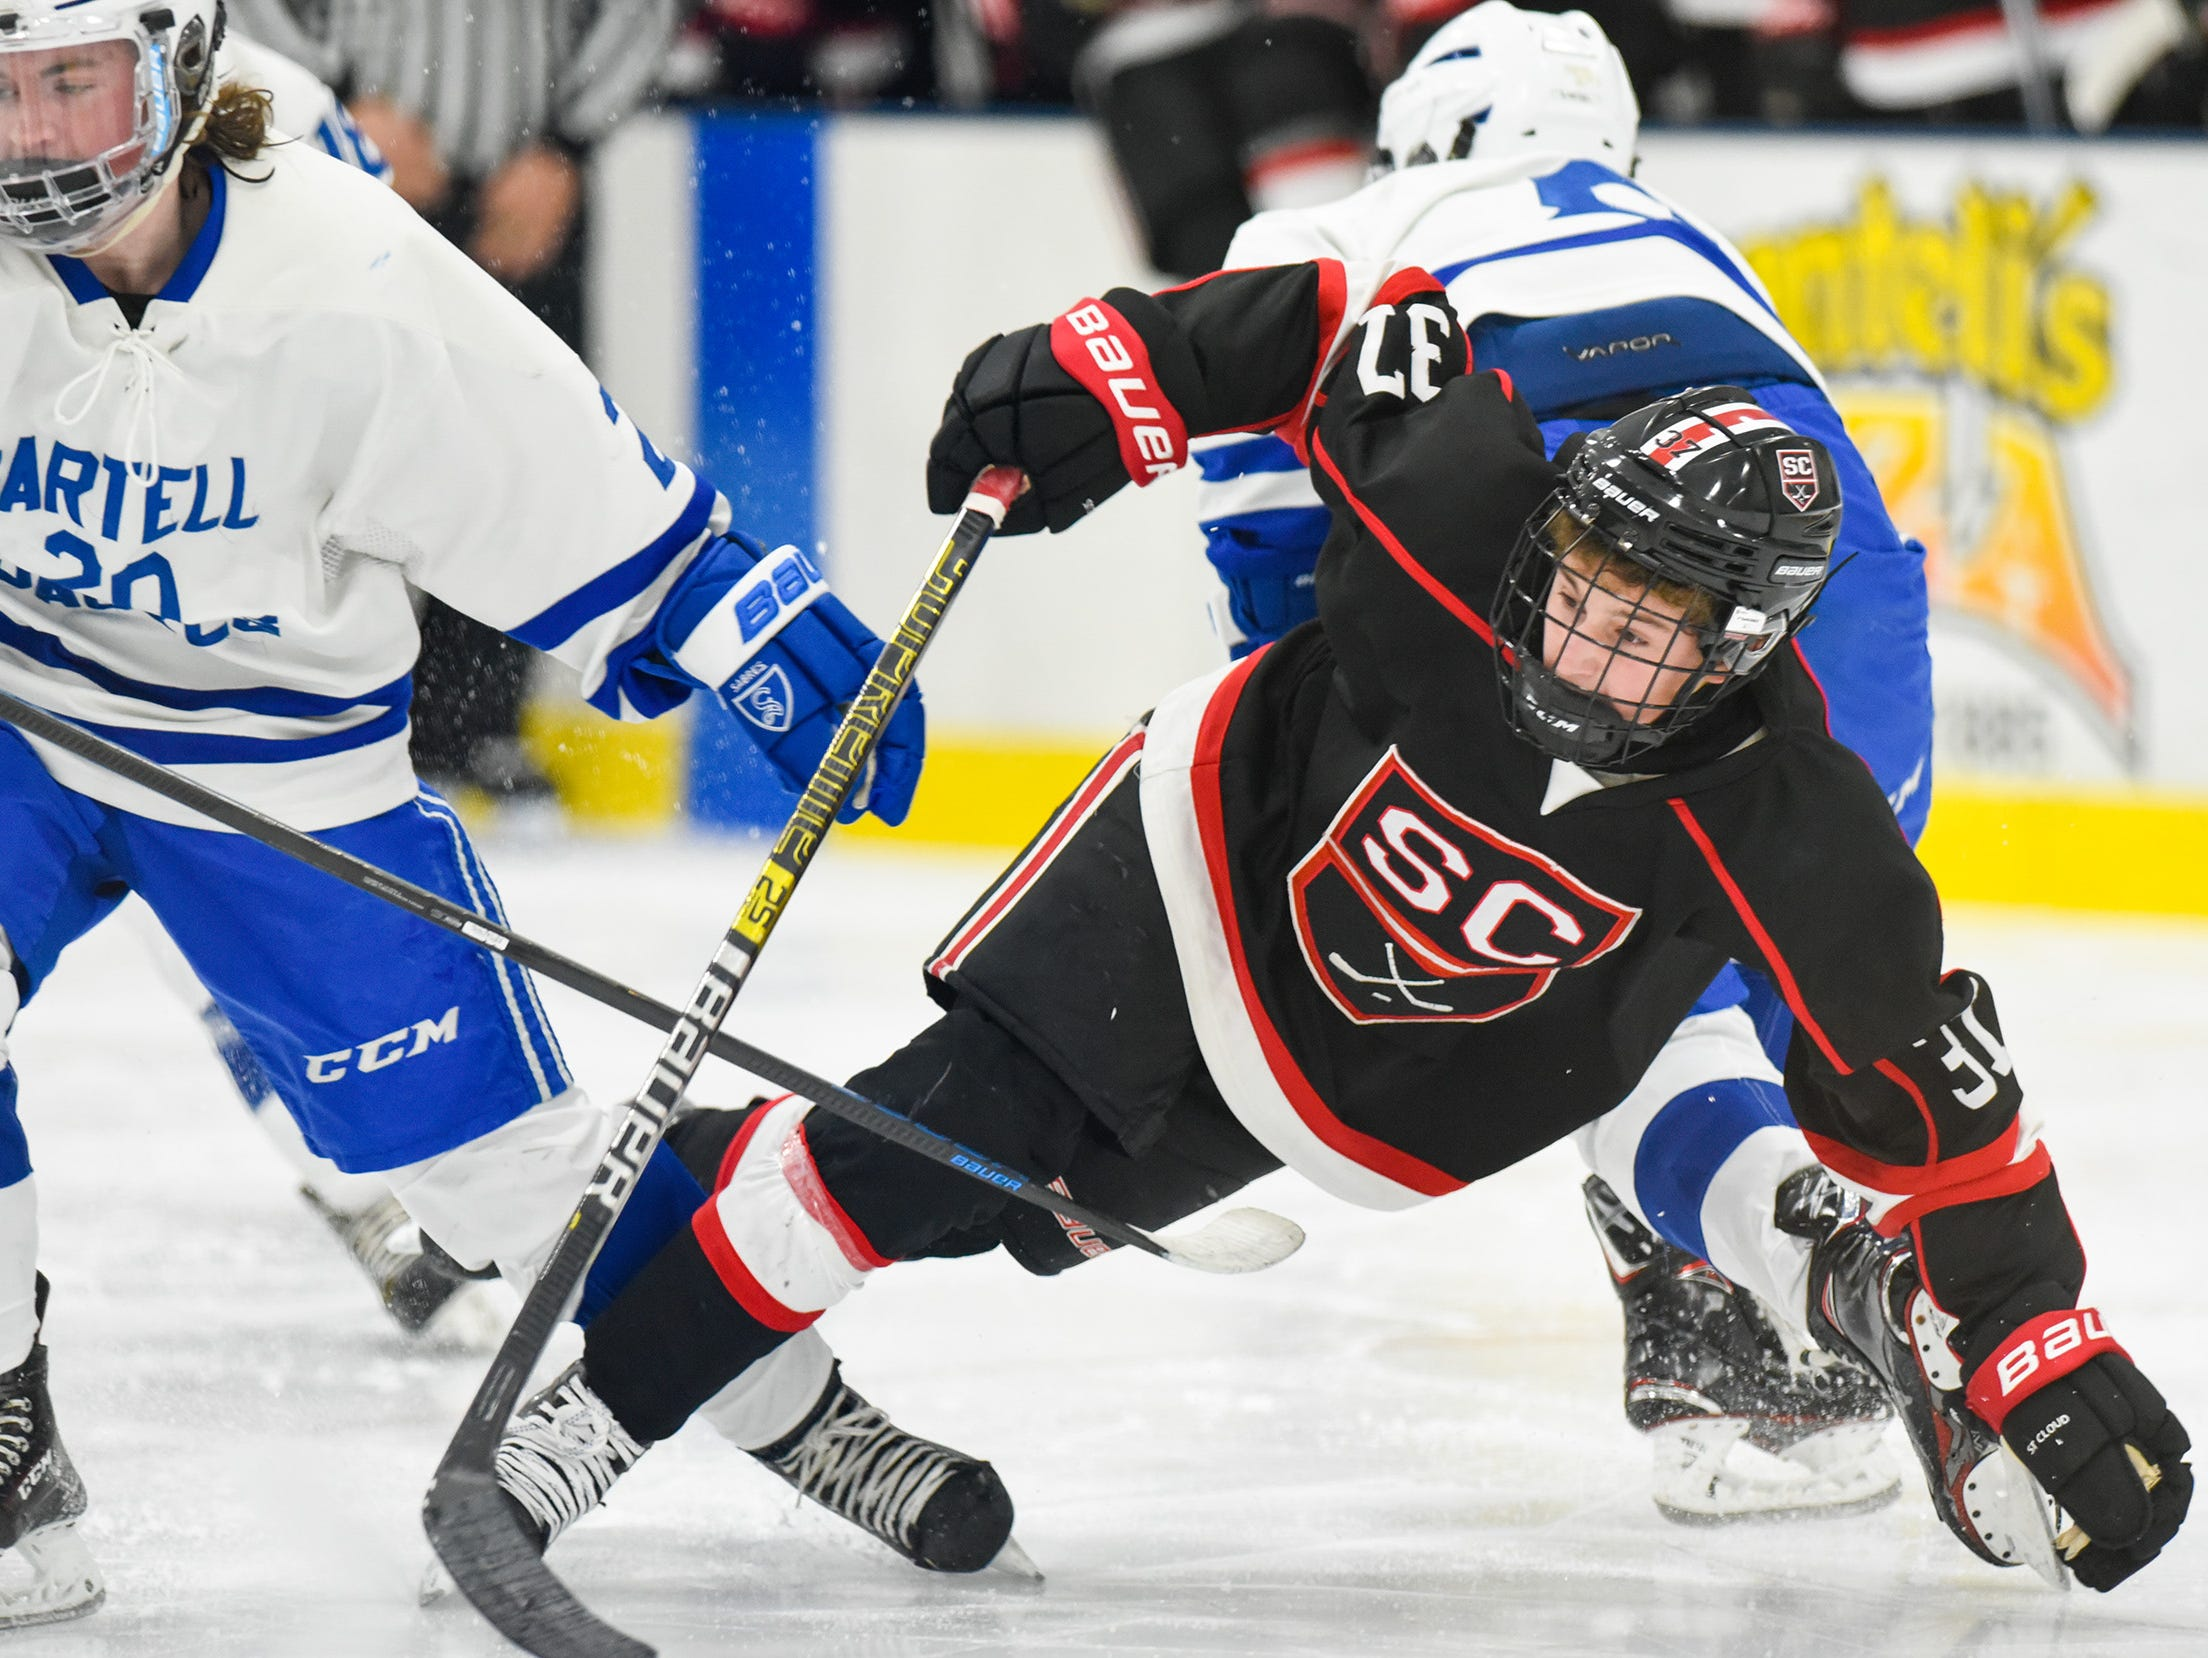 St. Cloud's Luke Johnson goes down chasing the puck against Sartell during the second period Tuesday, Dec. 18, at the Bernick's Arena in Sartell.